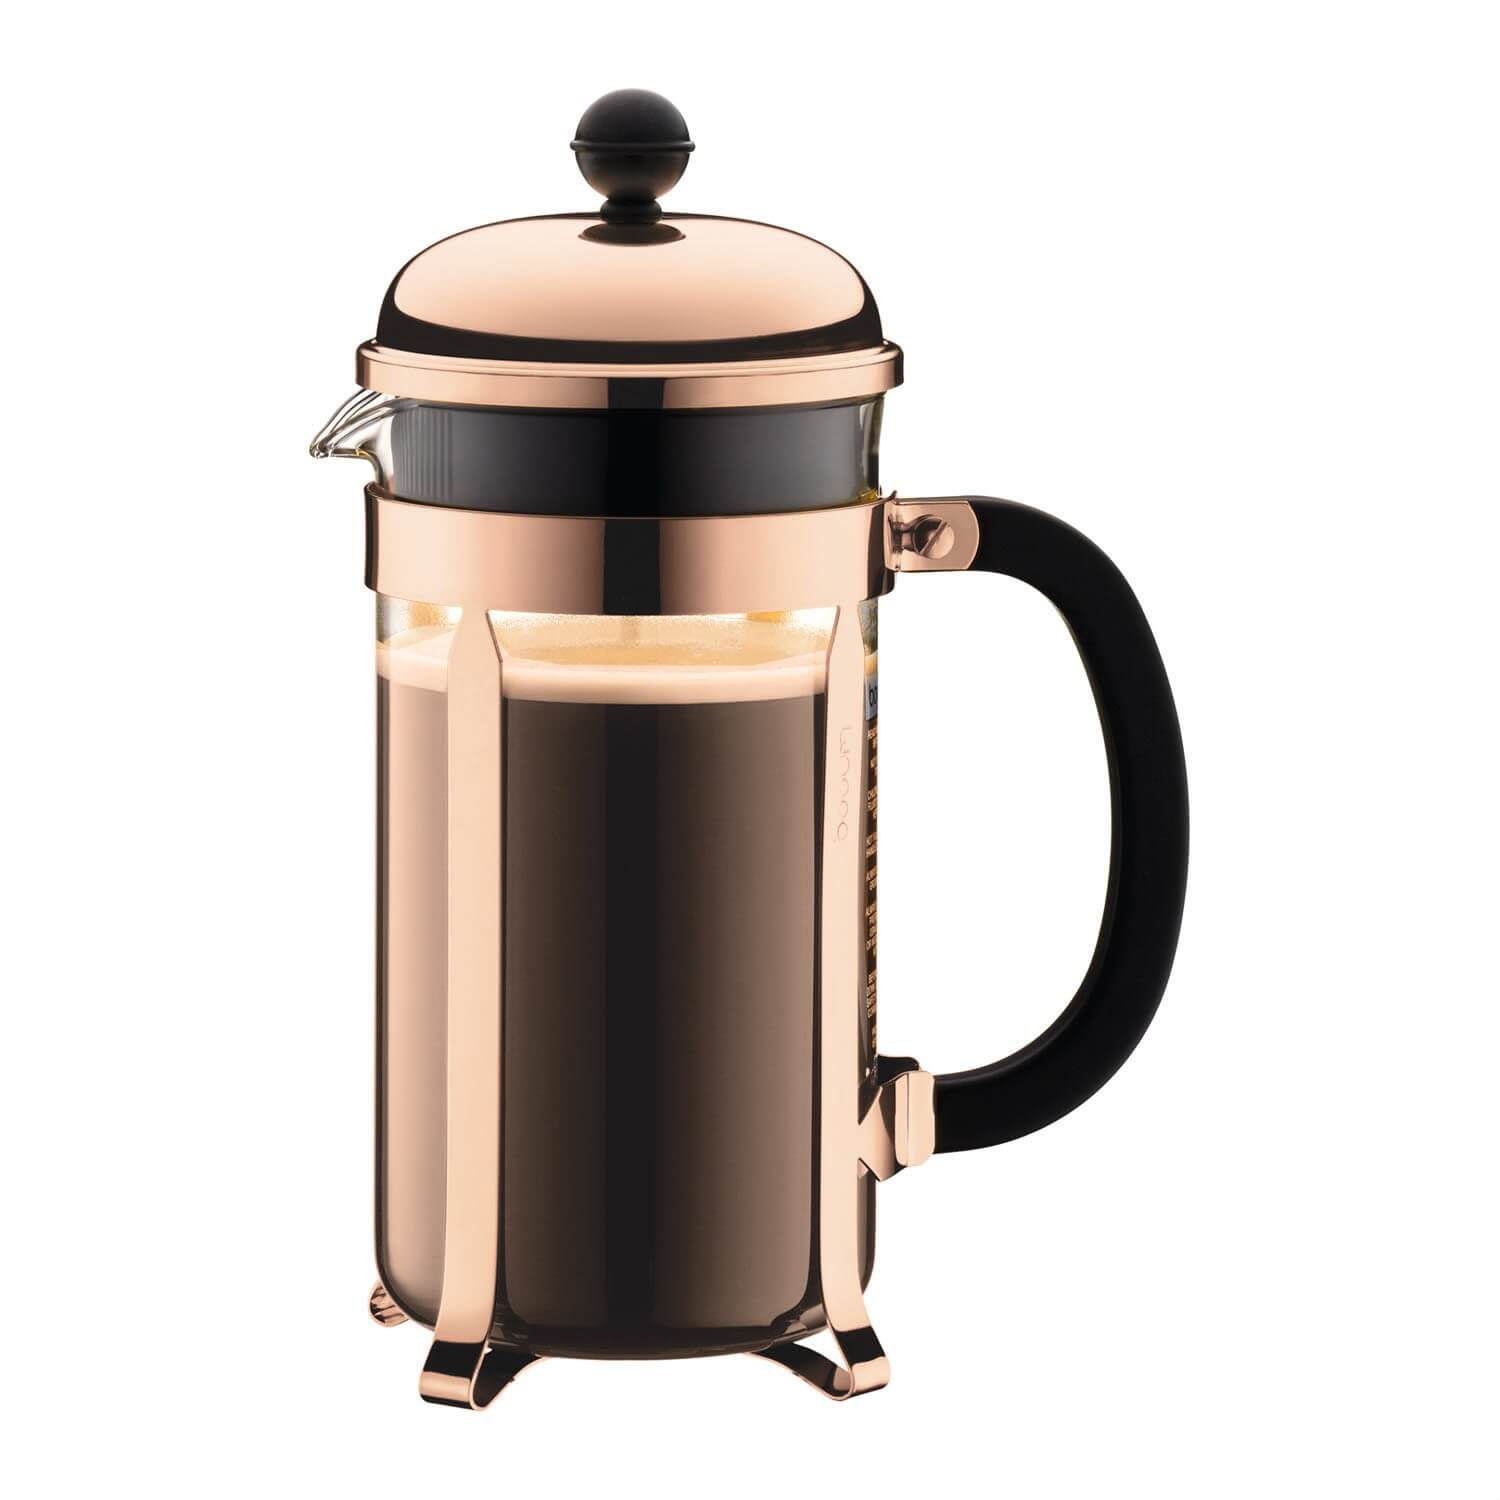 Image of Bodum Chambord 8-cup Coffeemaker, Copper